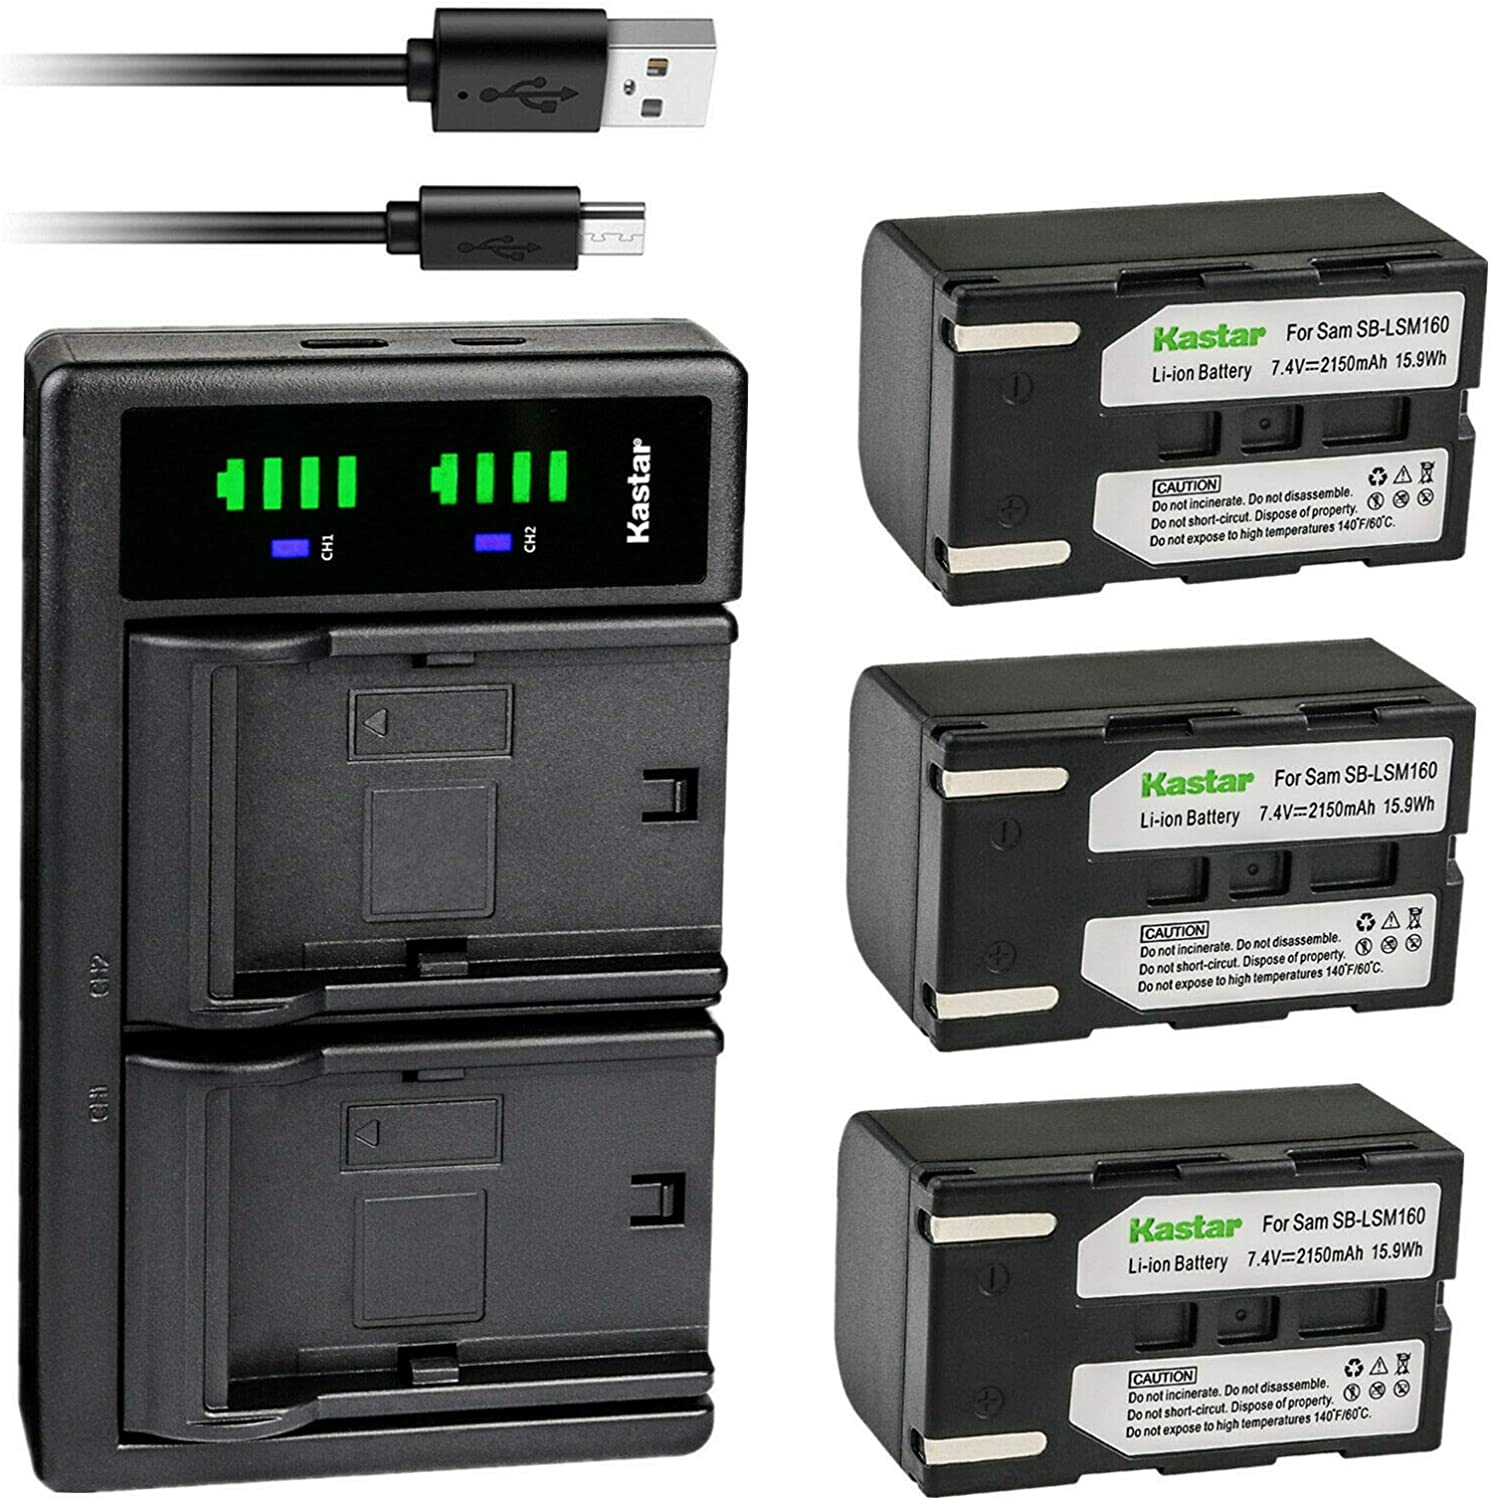 Max 79% OFF Kastar 3-Pack SB-LSM160 Battery and Replacement LTD2 Cheap mail order sales USB Charger